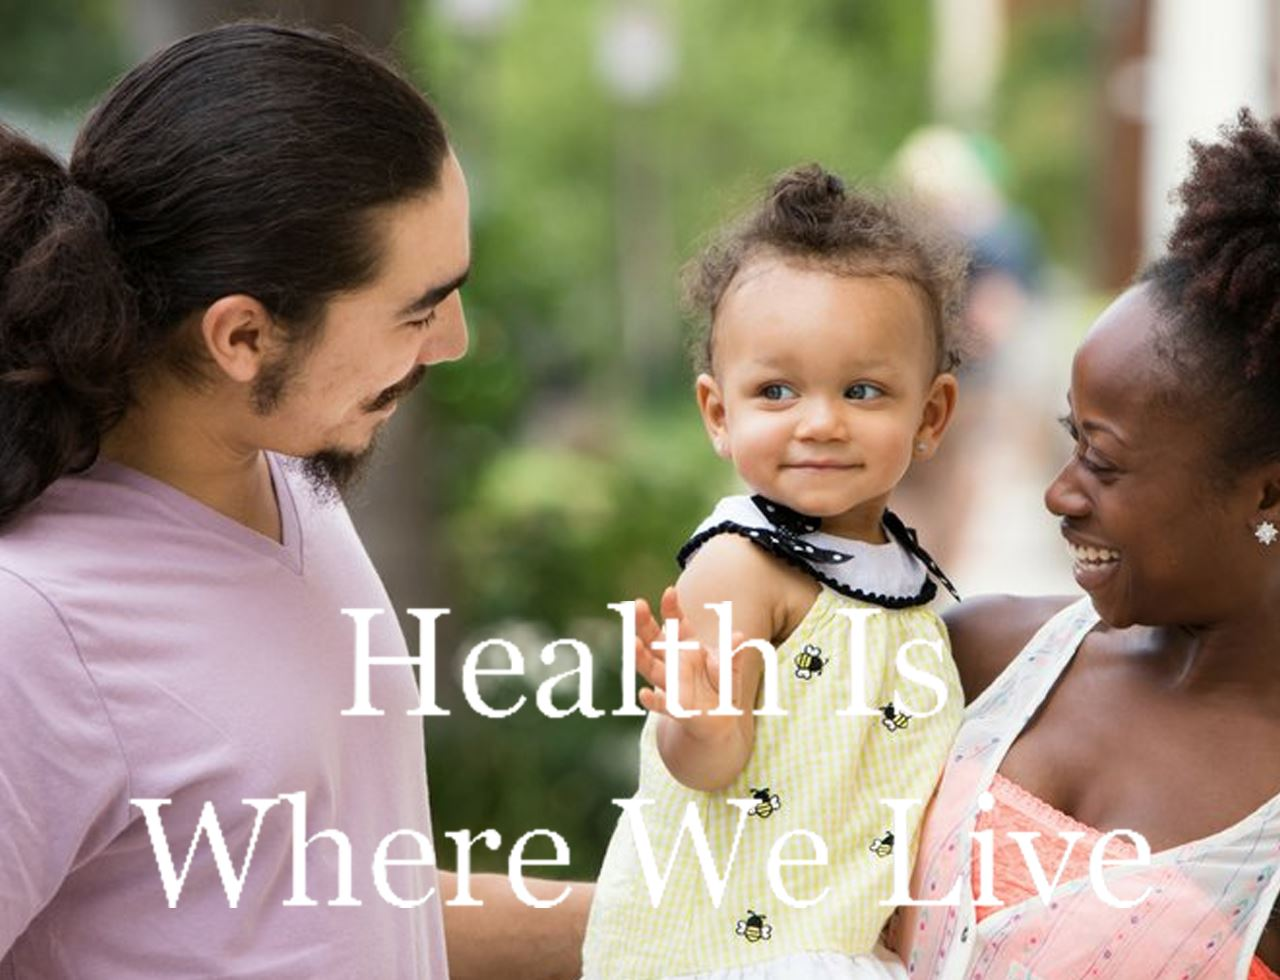 Health is where we live text over image of young family